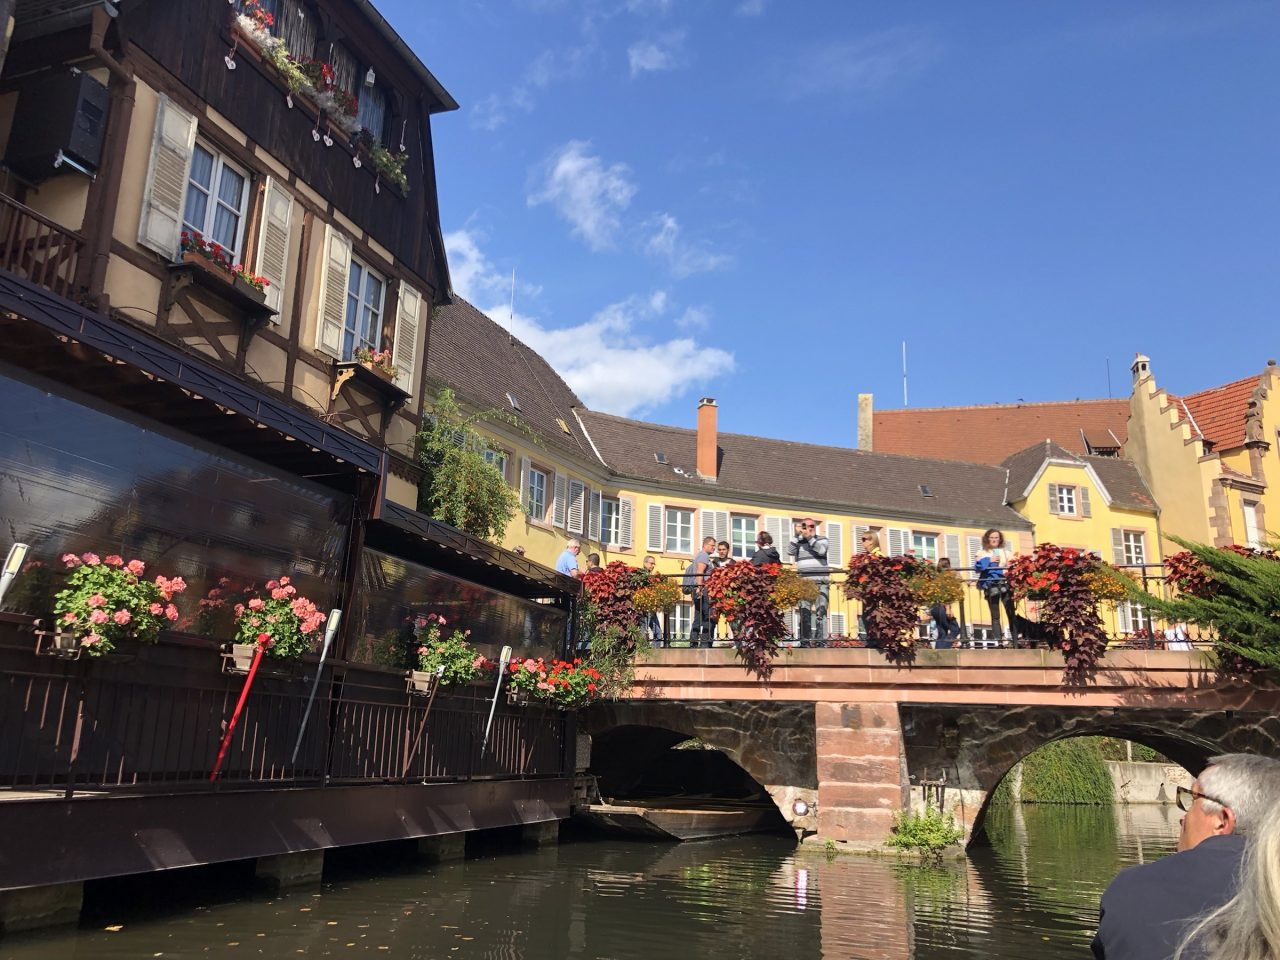 Colmar, France boat ride